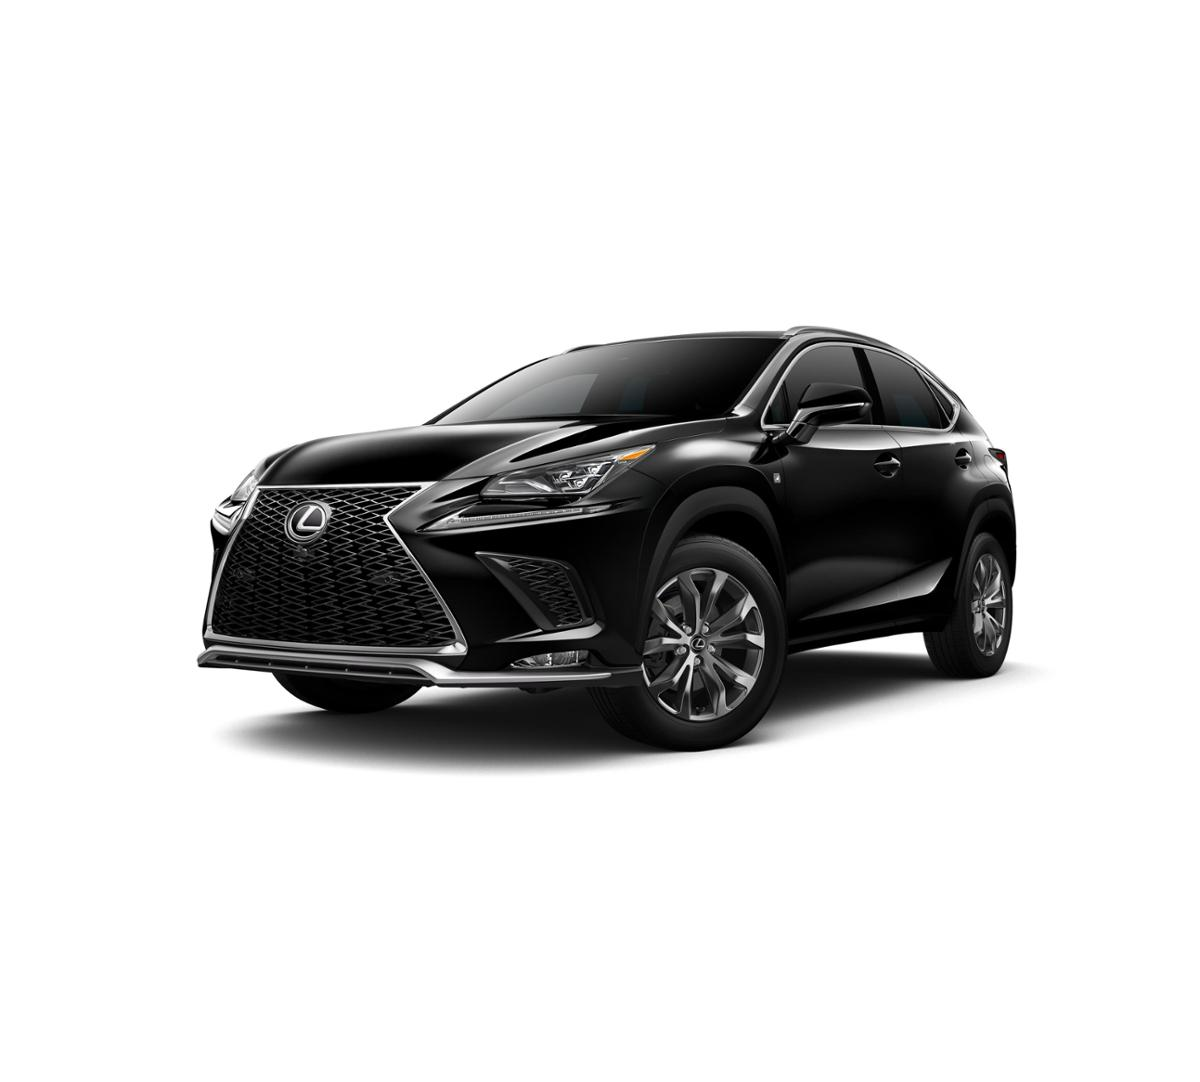 2018 Lexus NX 300 Vehicle Photo in Santa Monica, CA 90404